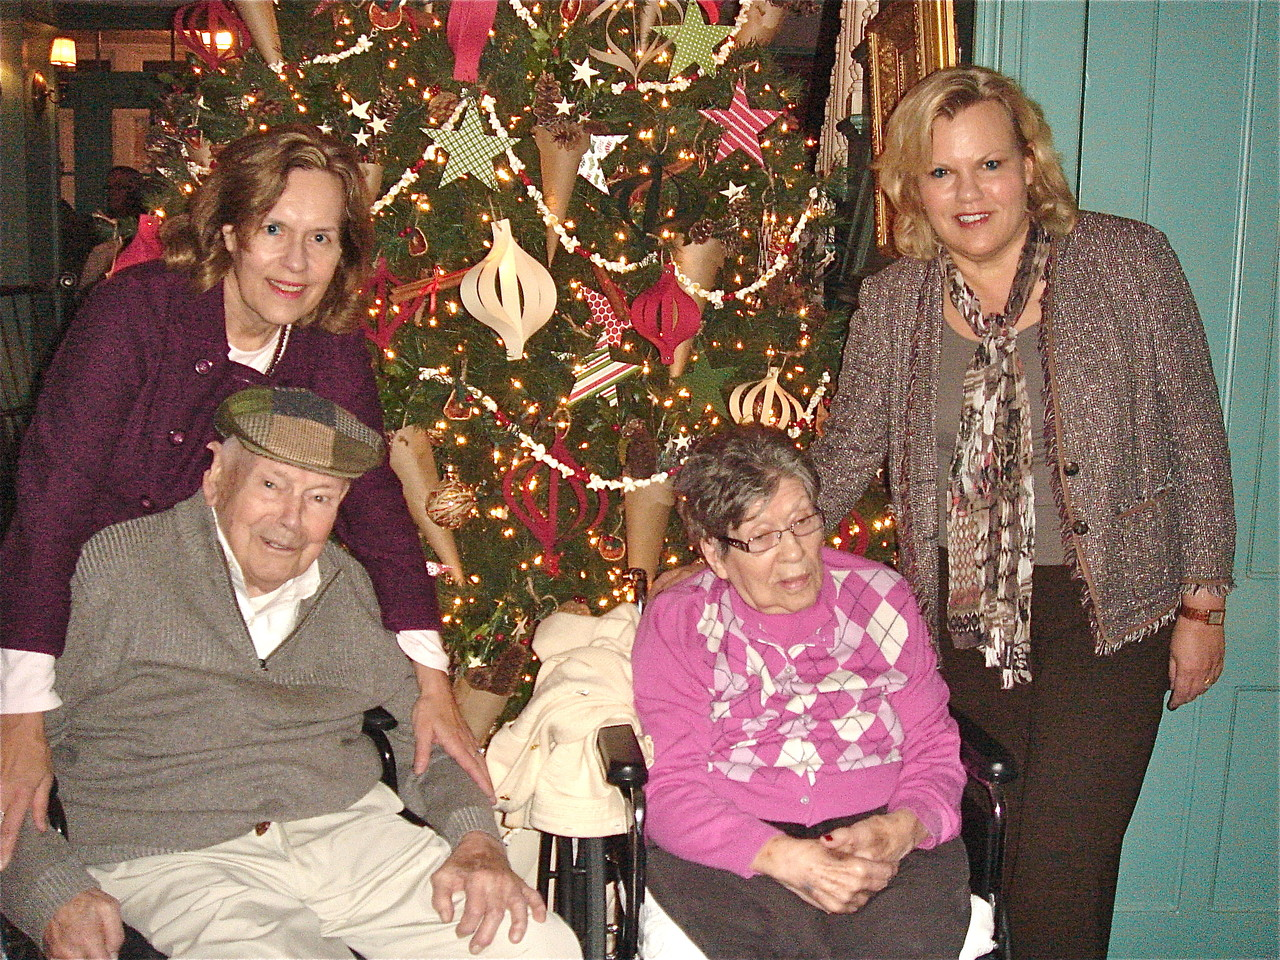 Lorraine & Celeste with parents Al & El, Thanksgiving, 2012.